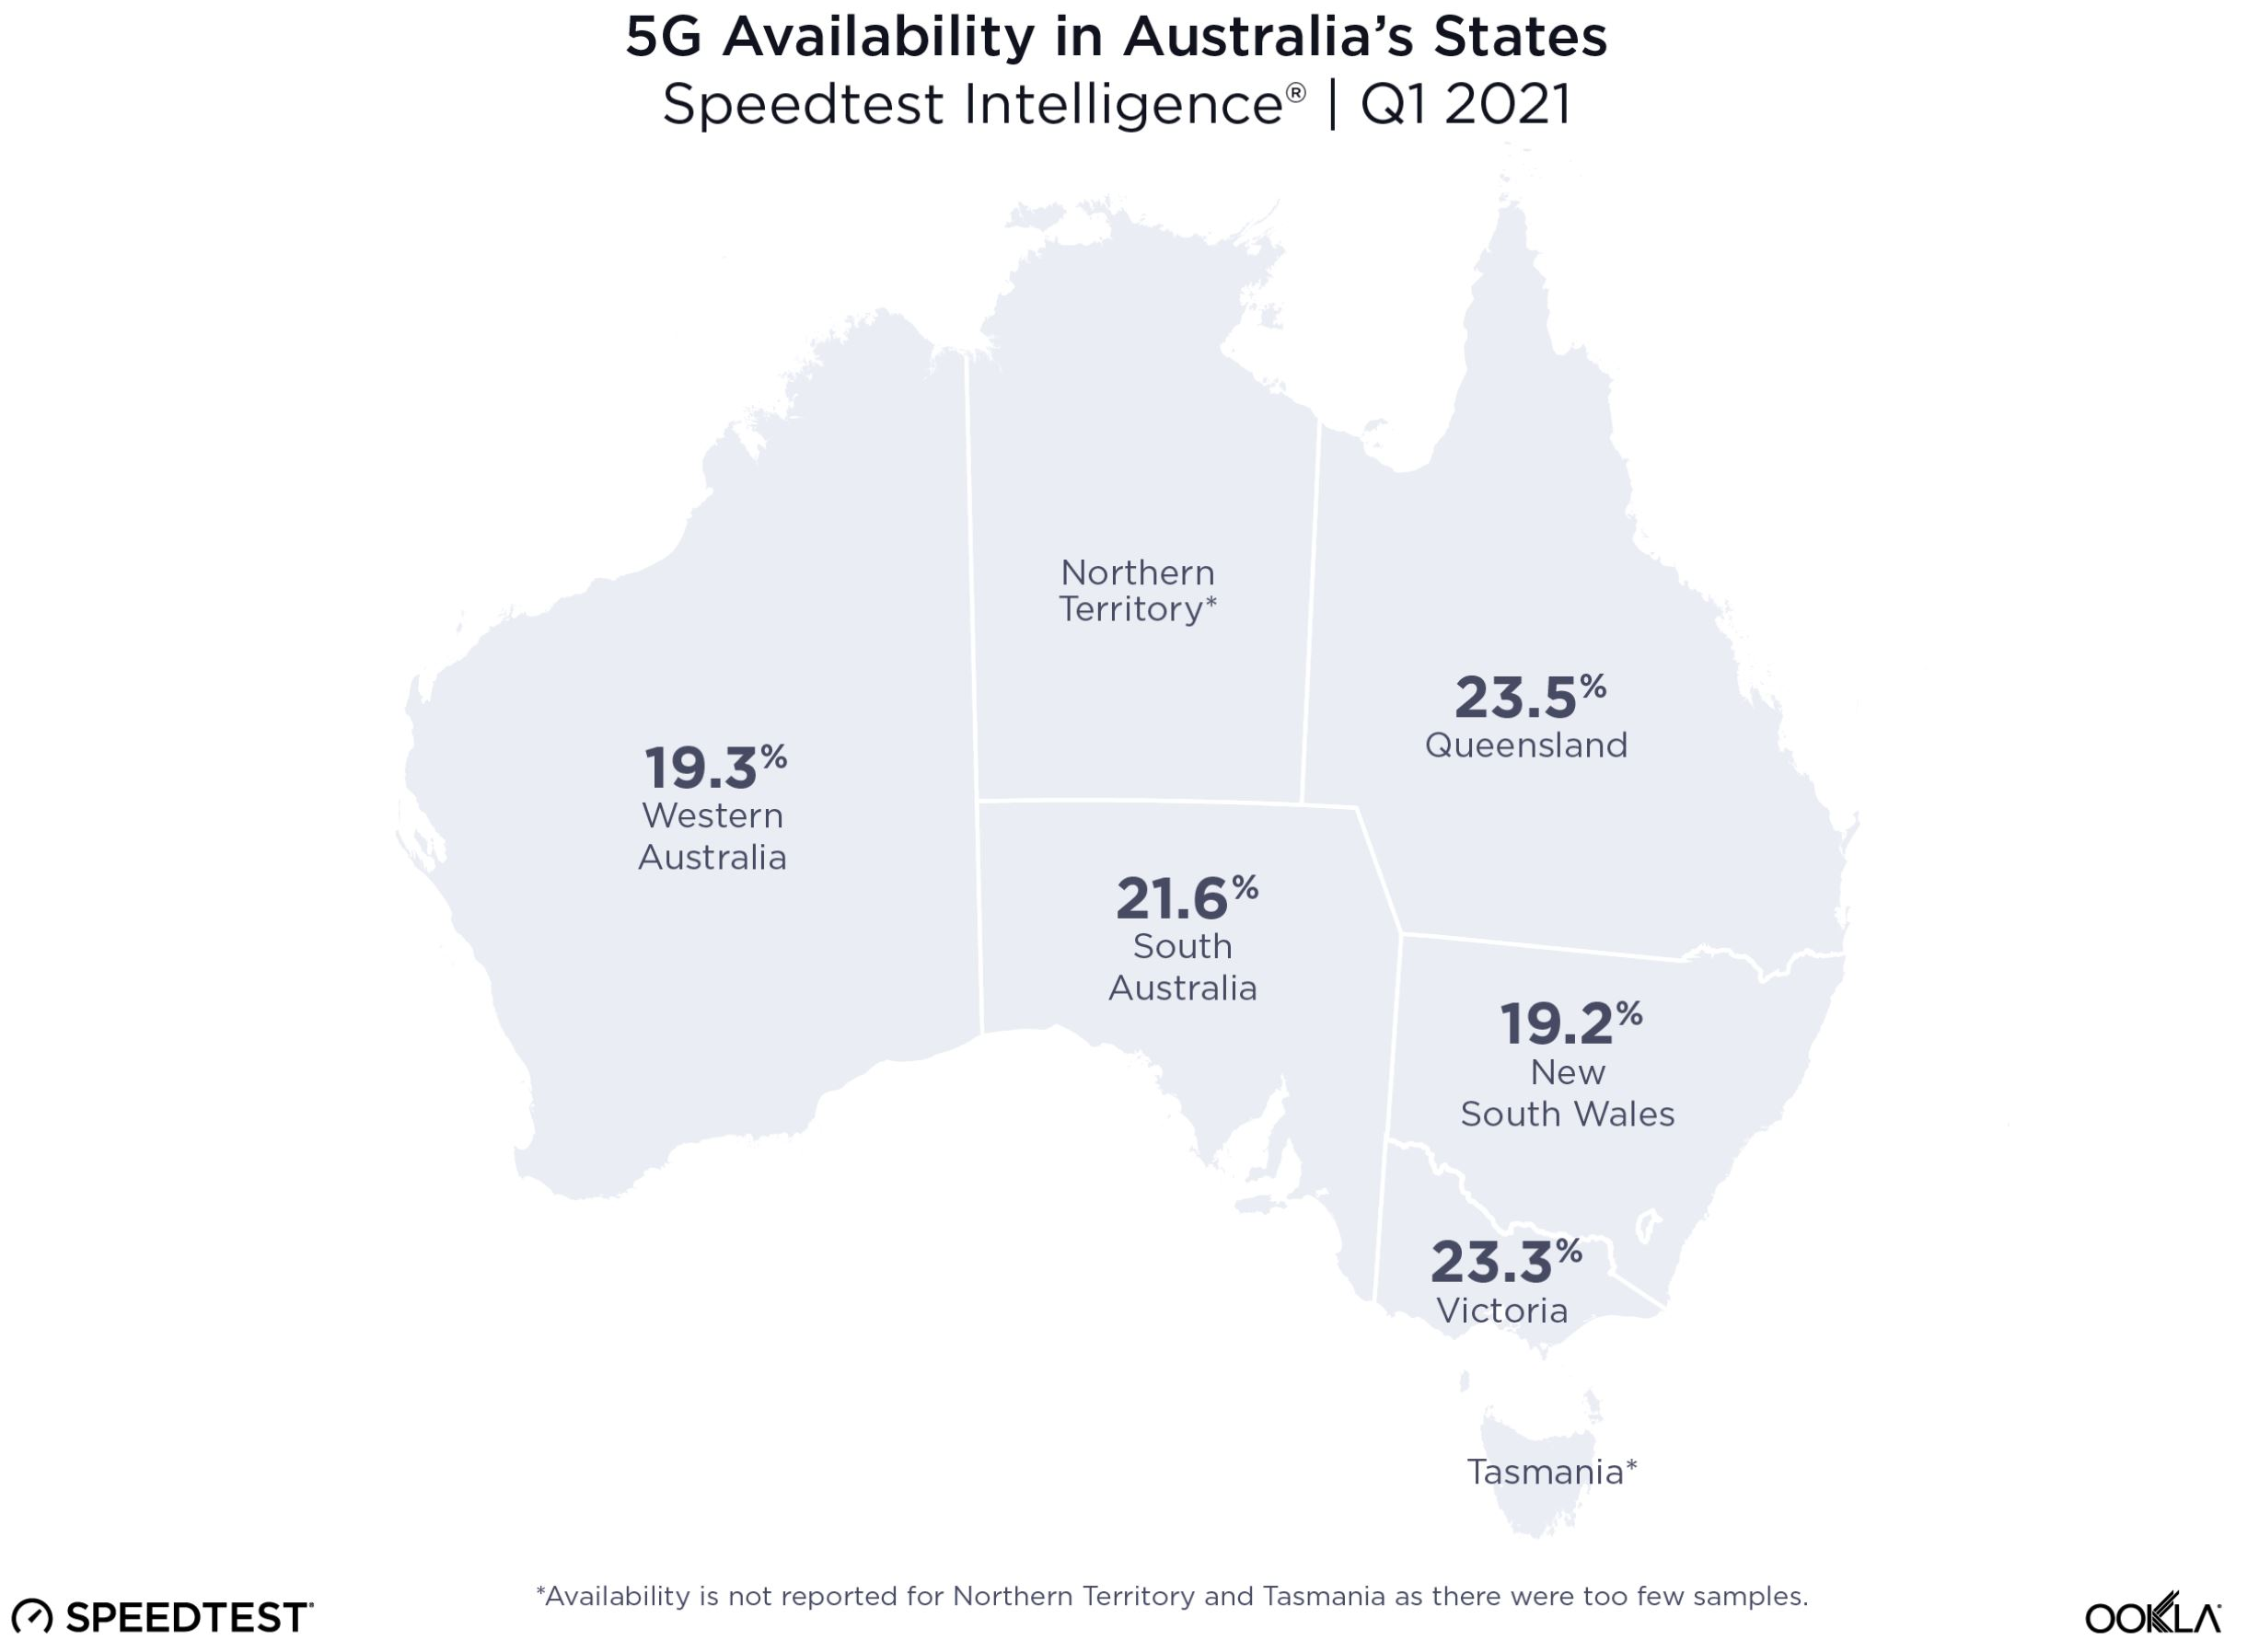 State availability 5G